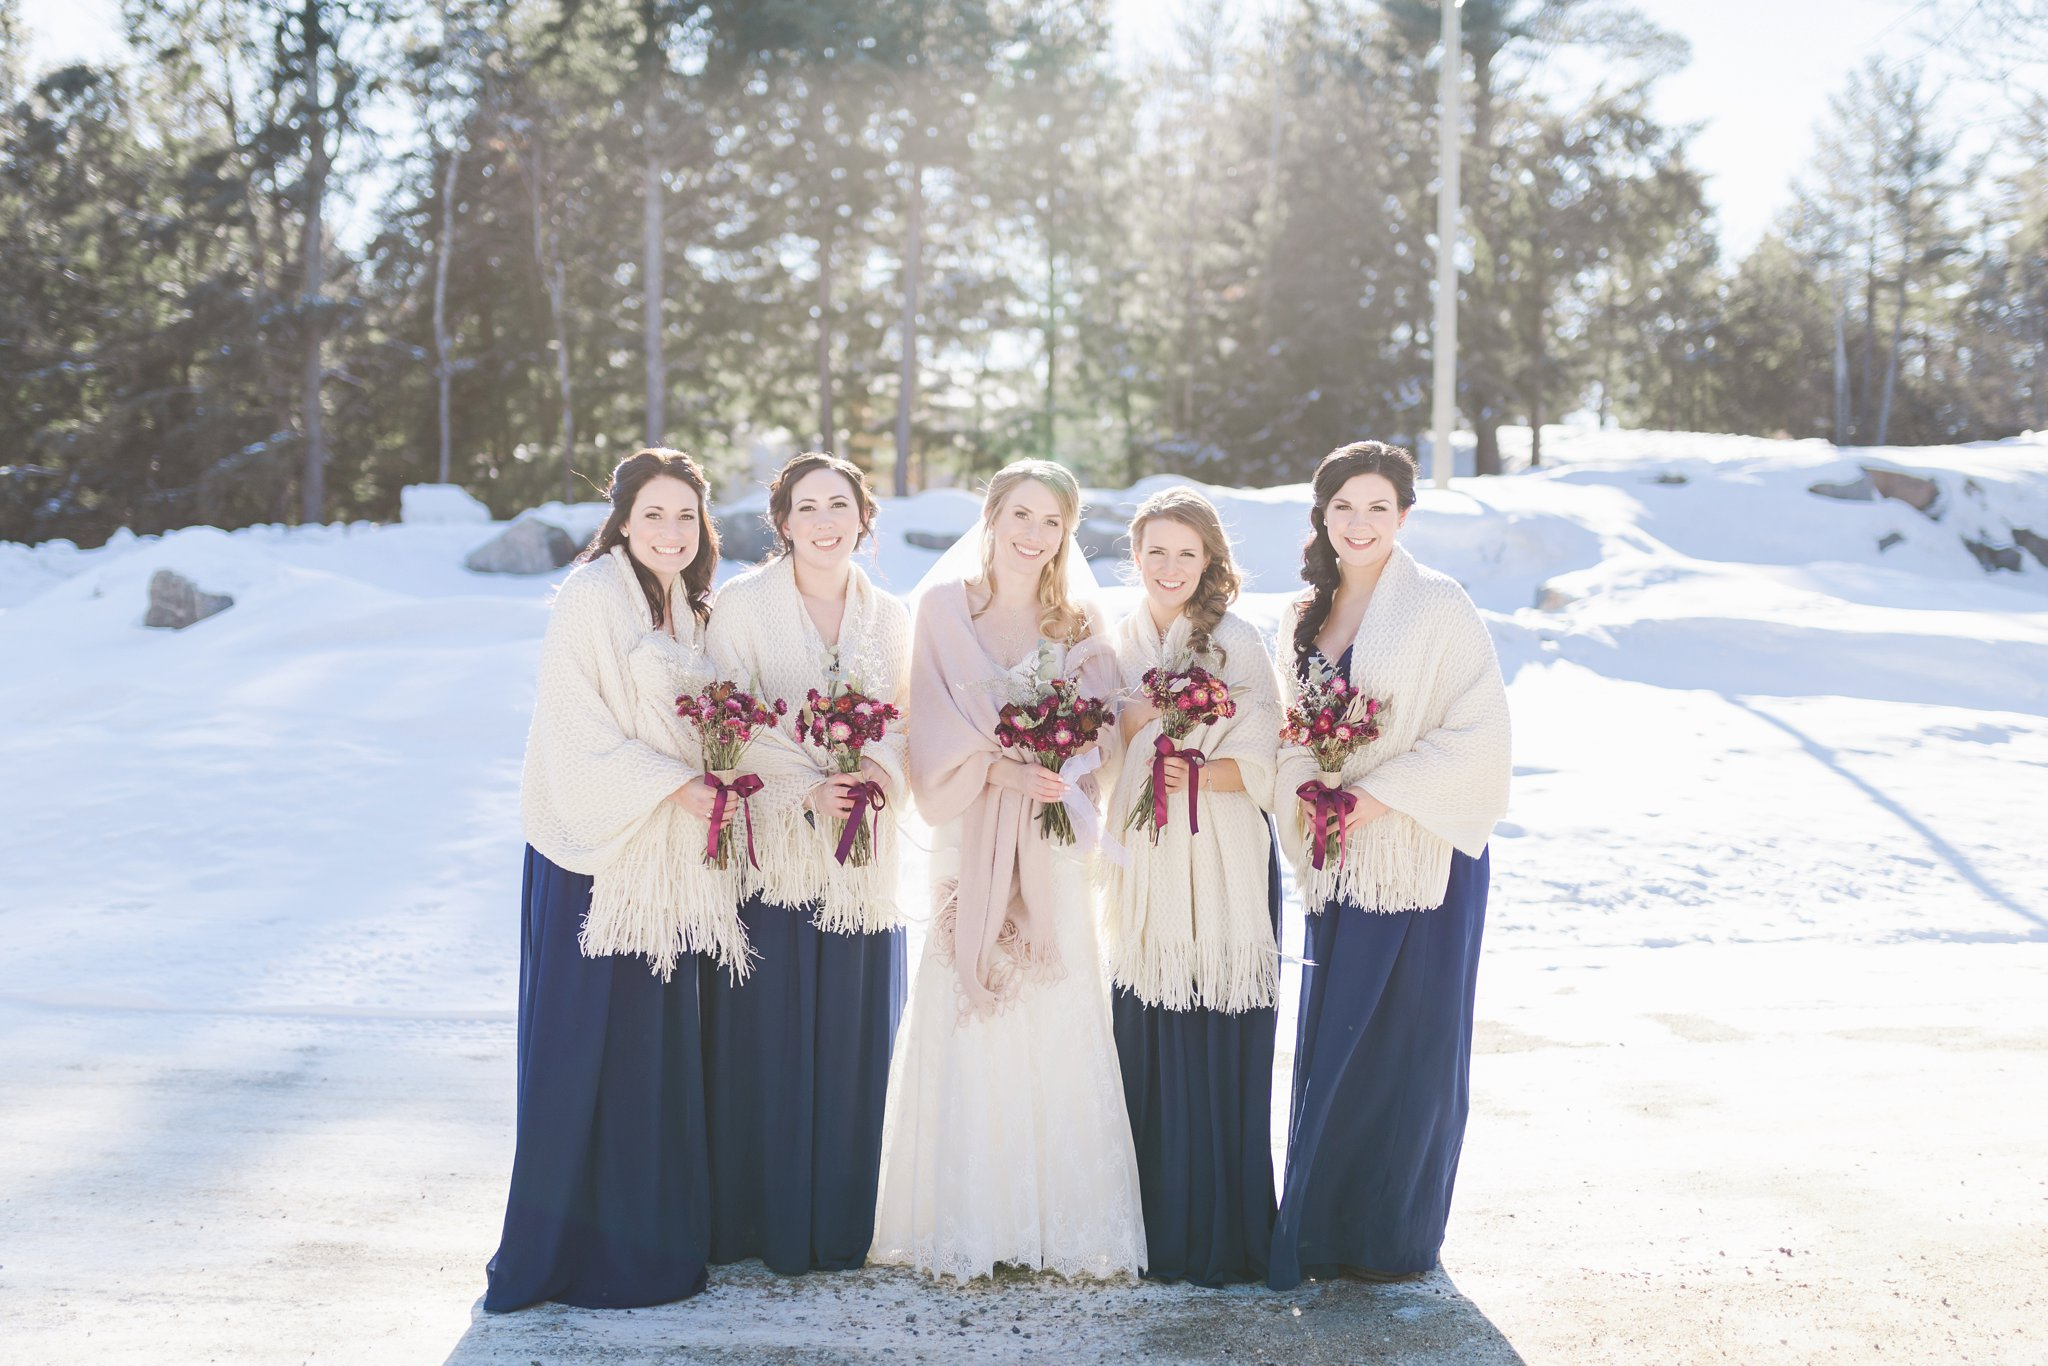 Bridal party in the snow at the Winter wedding at Le Belvedere